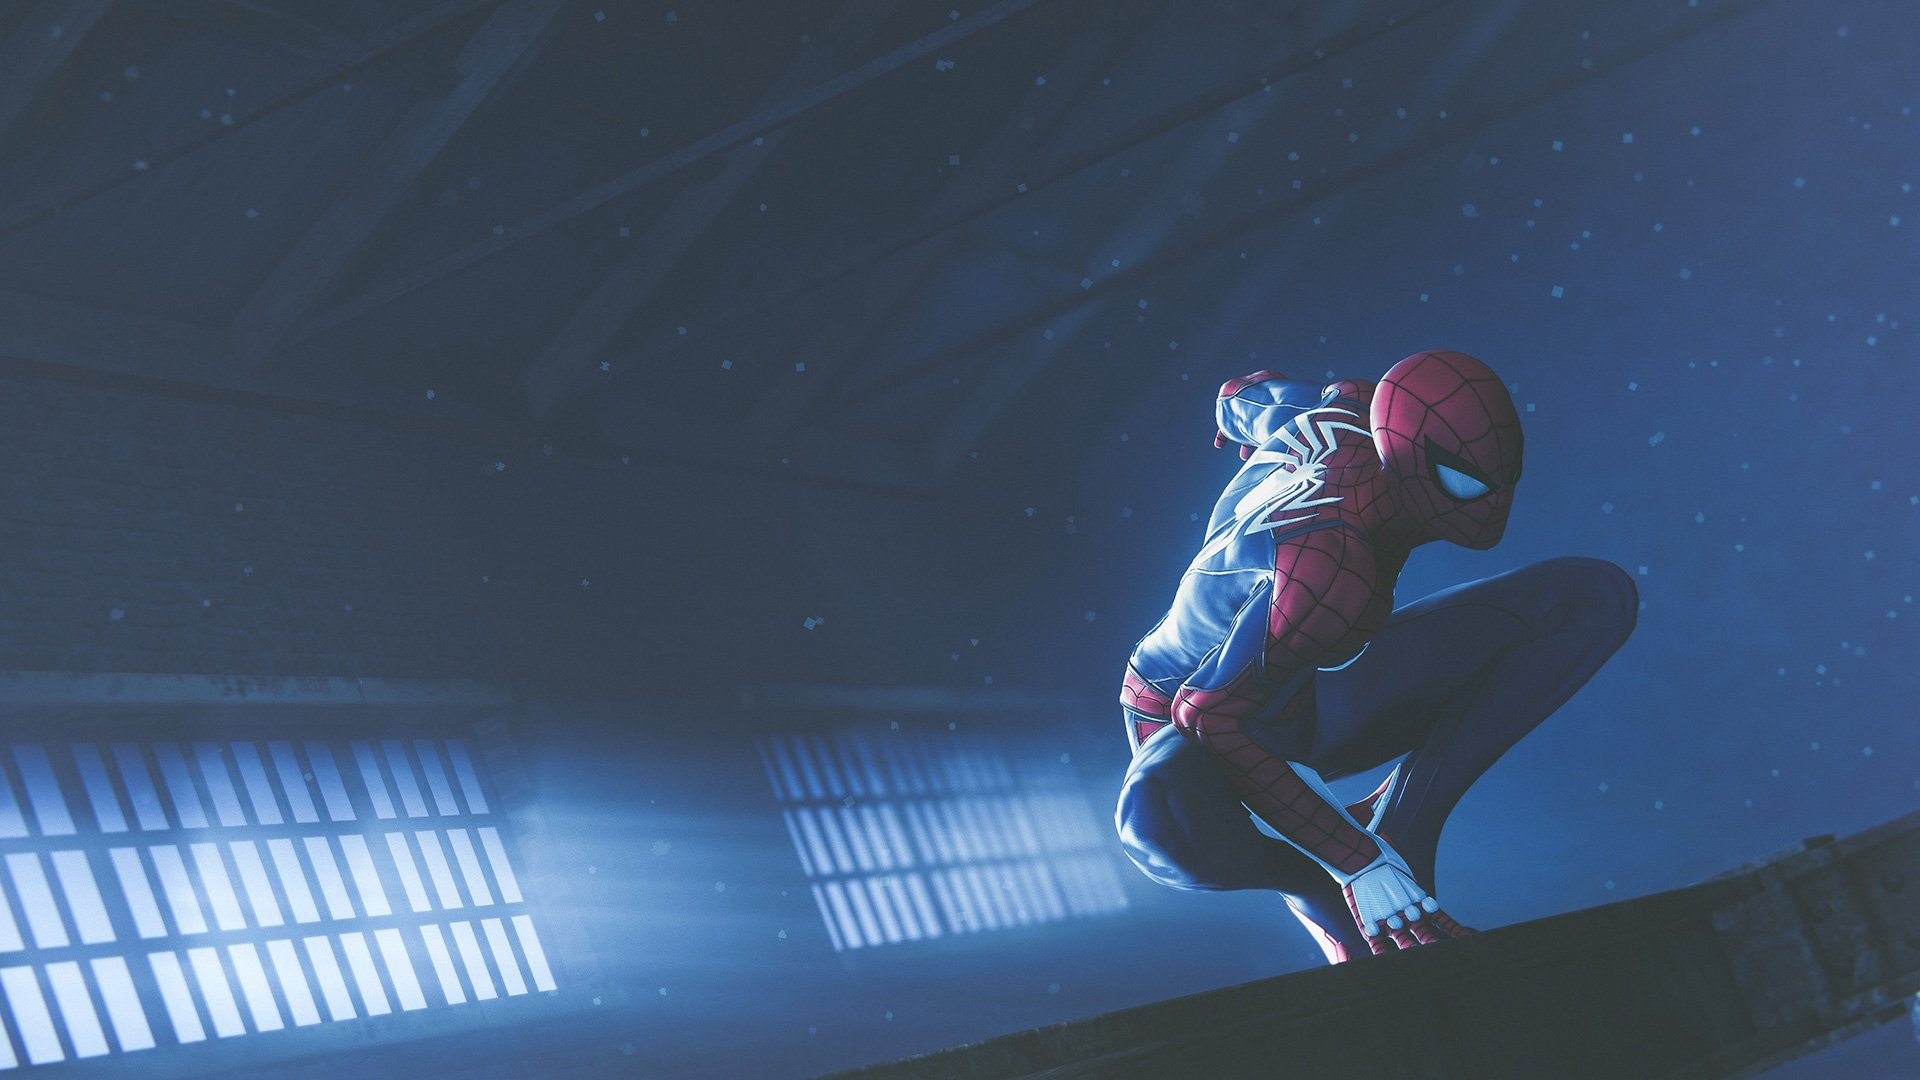 Spider Man Wallpaper 1080P Desktop